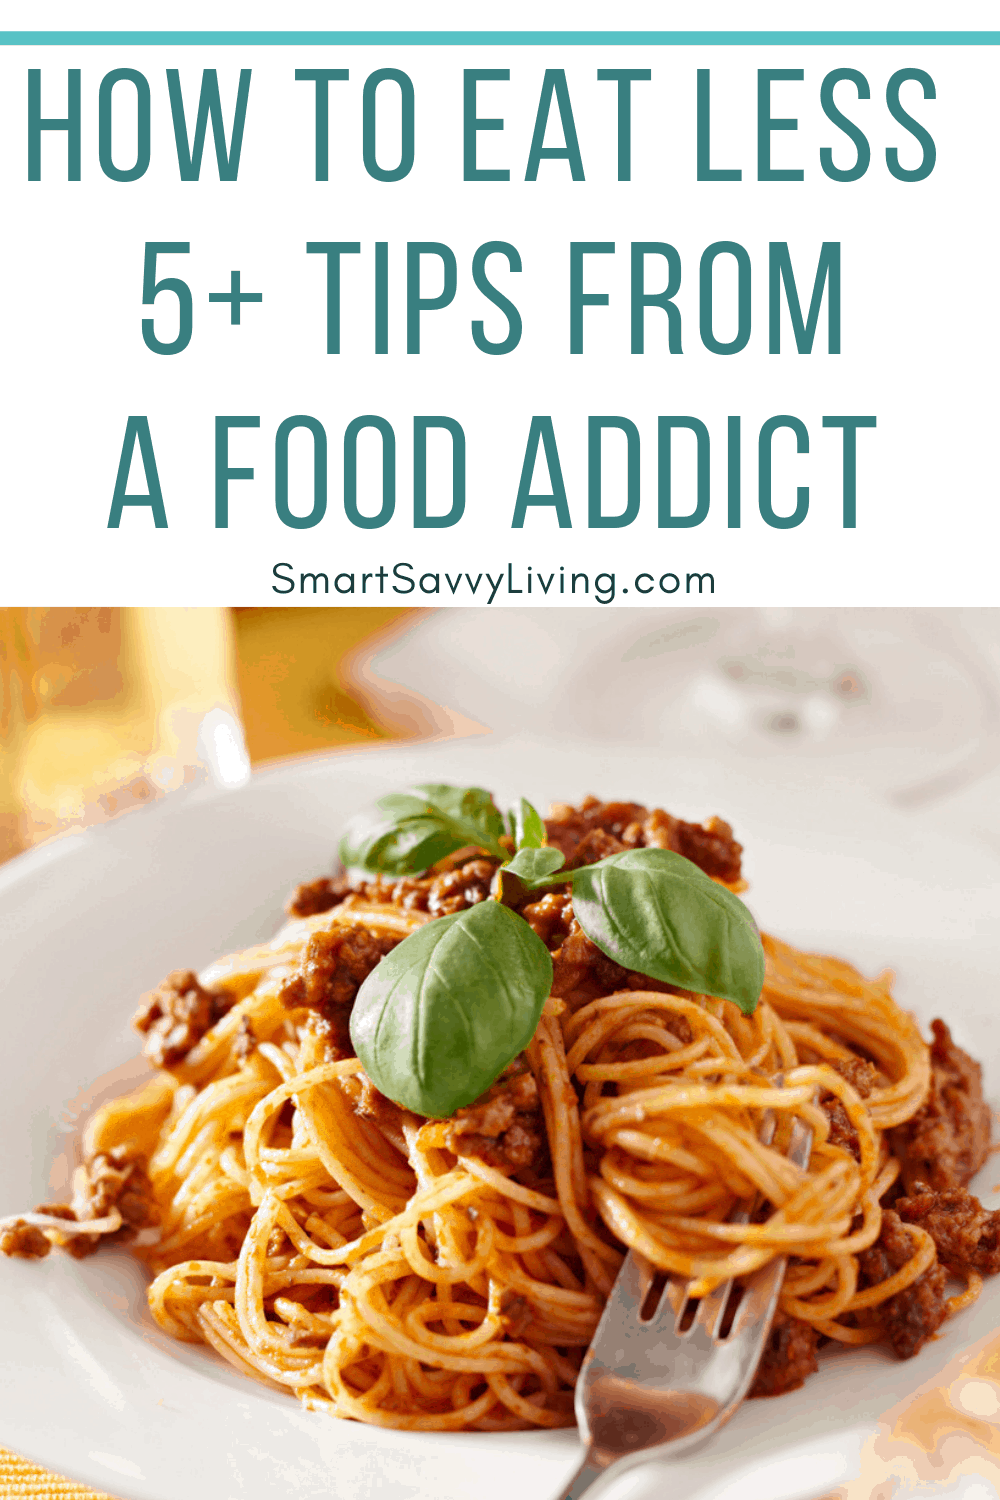 How To Eat Less - 5+ Tips From A Food Addict 4